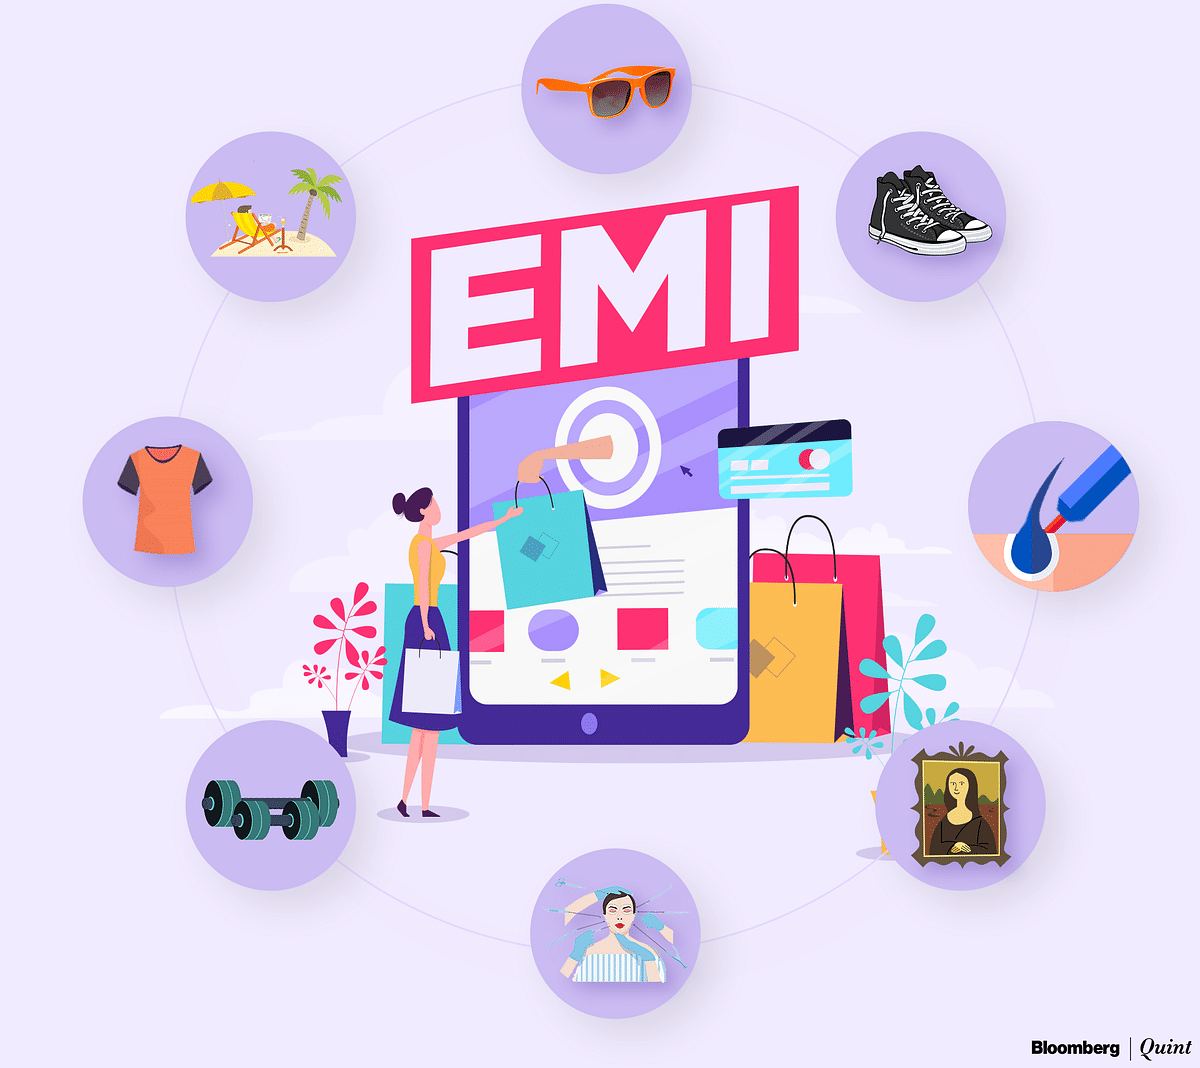 Where There Is A Spend, There Is An EMI